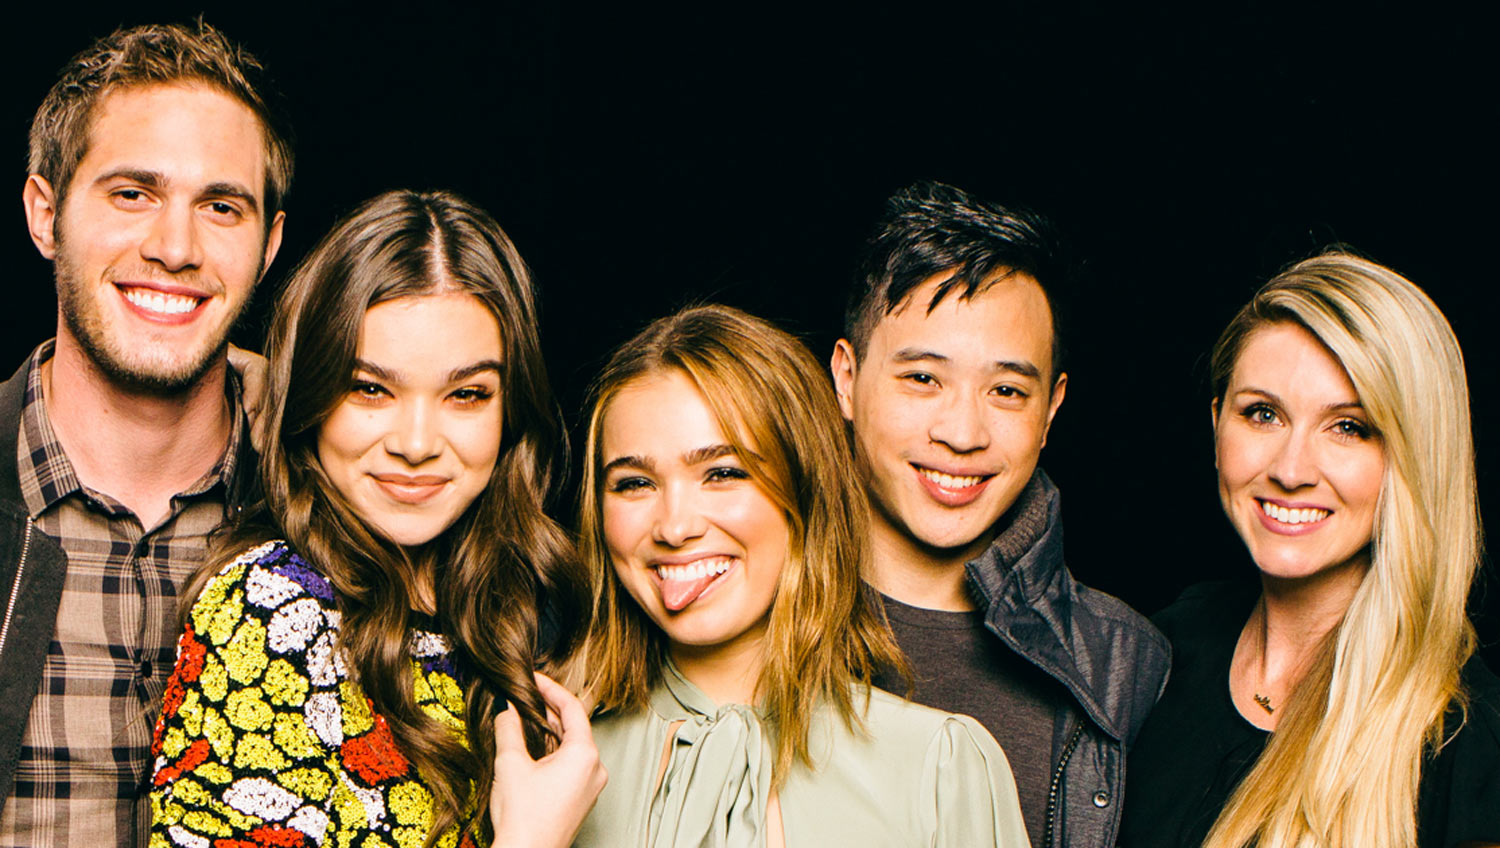 Hailee Steinfeld Opens Up About Perfecting Her Edge Of